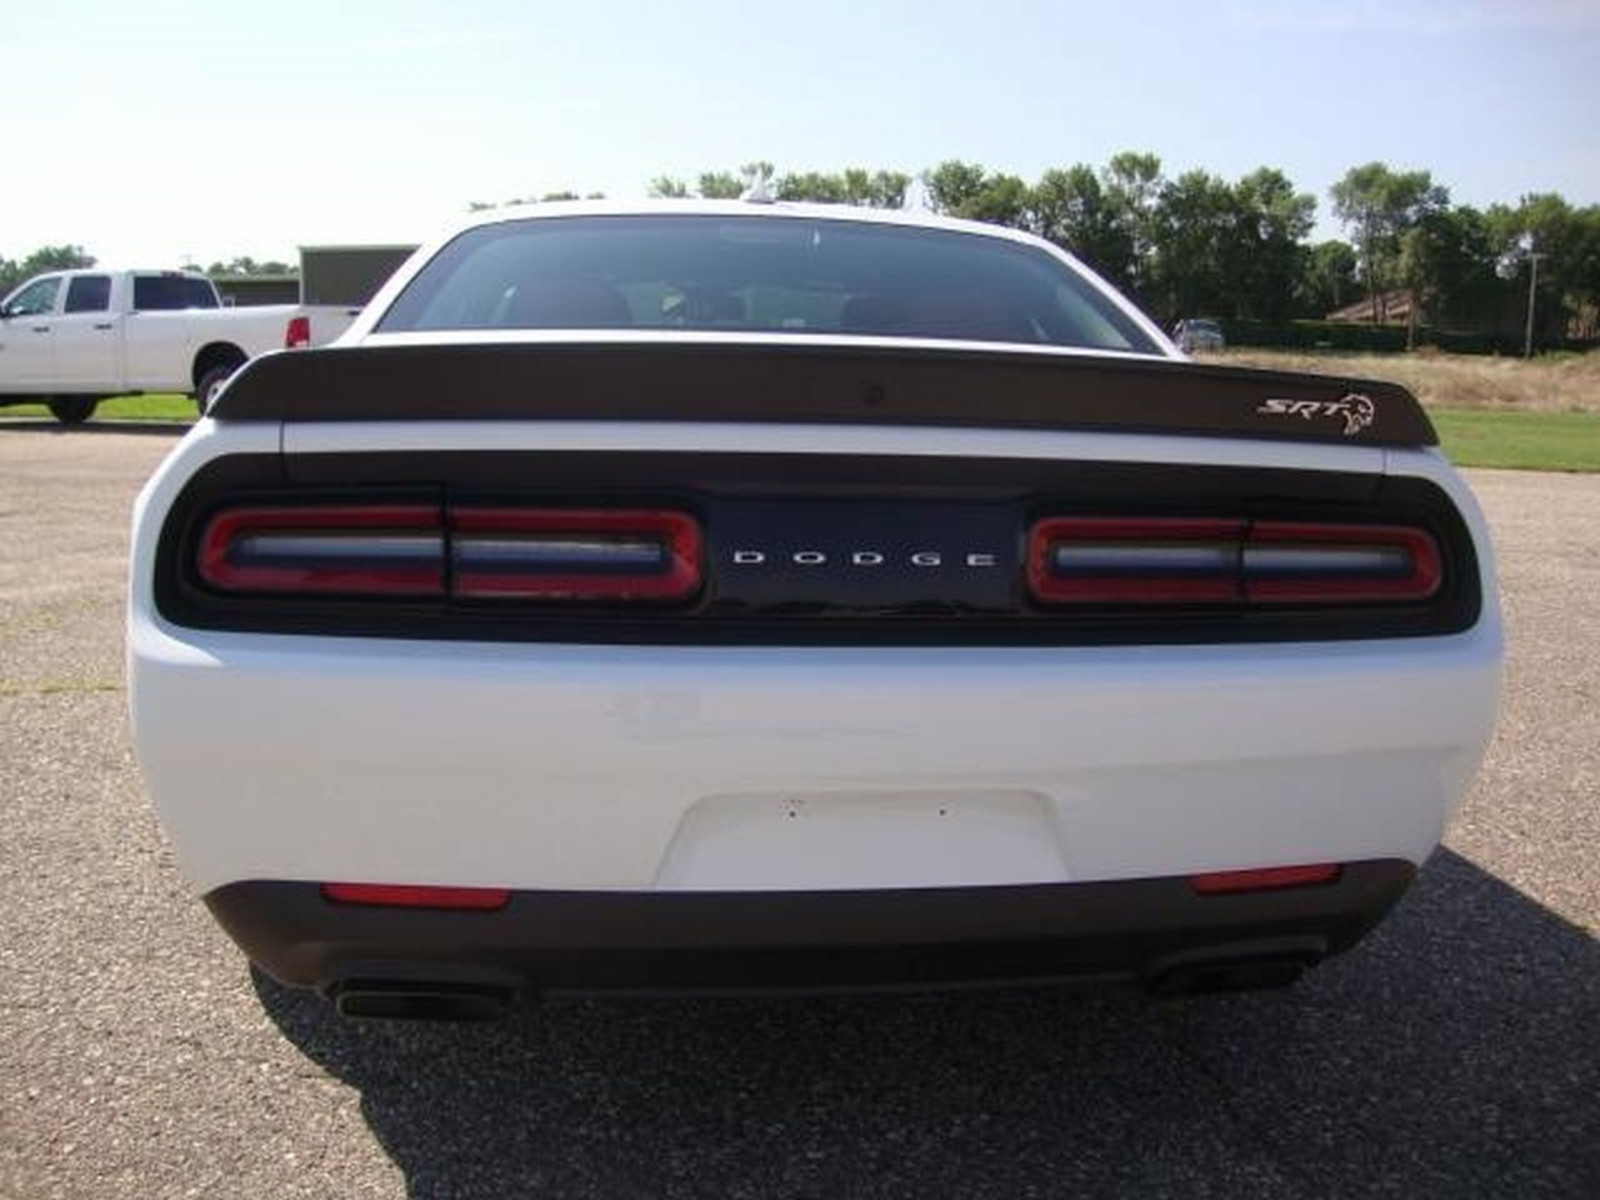 2018 Dodge Challenger Hell Cat SRT Wide Body - Image 10